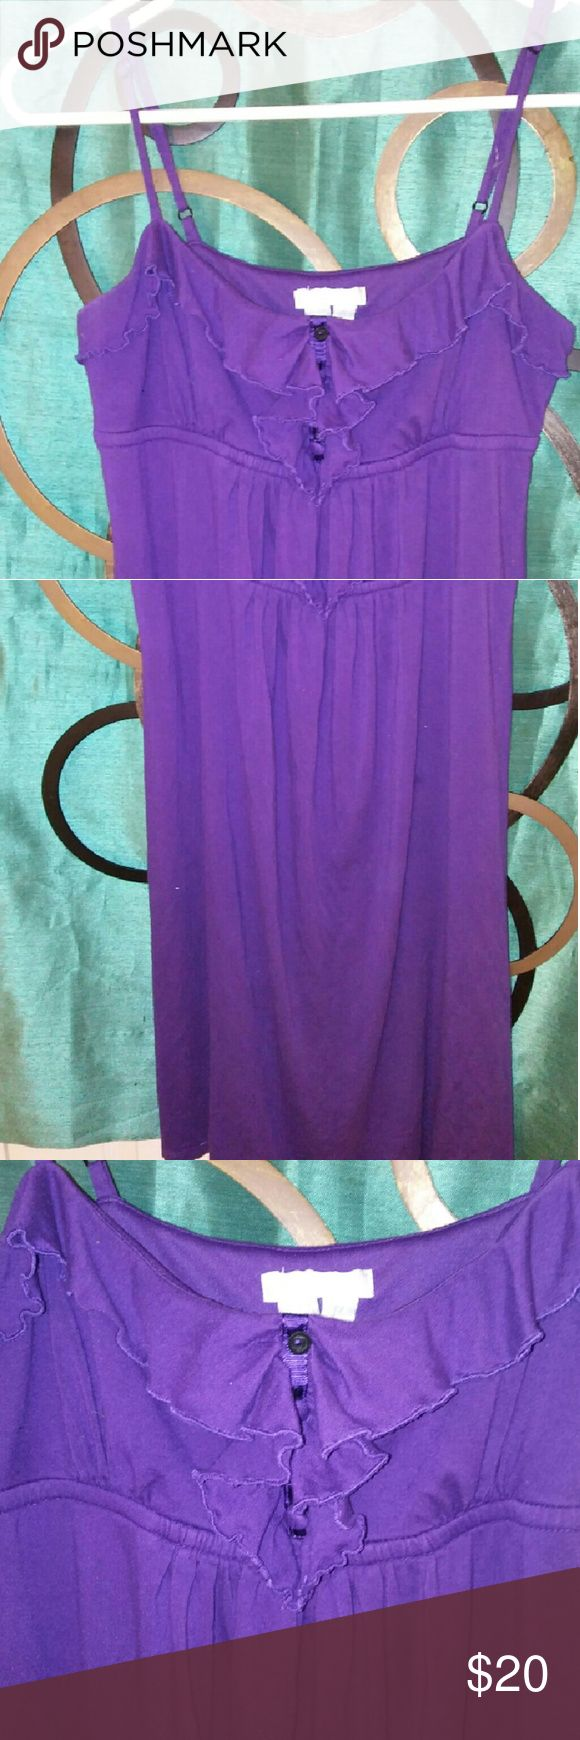 Adorable spaghetti strap summer dress Beautiful eggplant purple color spaghetti strap summary dress.. empire waist has inside bra top for extra support .ruffle detail in the middle great flowy dress for picnic everyday night out really anything London Times Dresses Midi